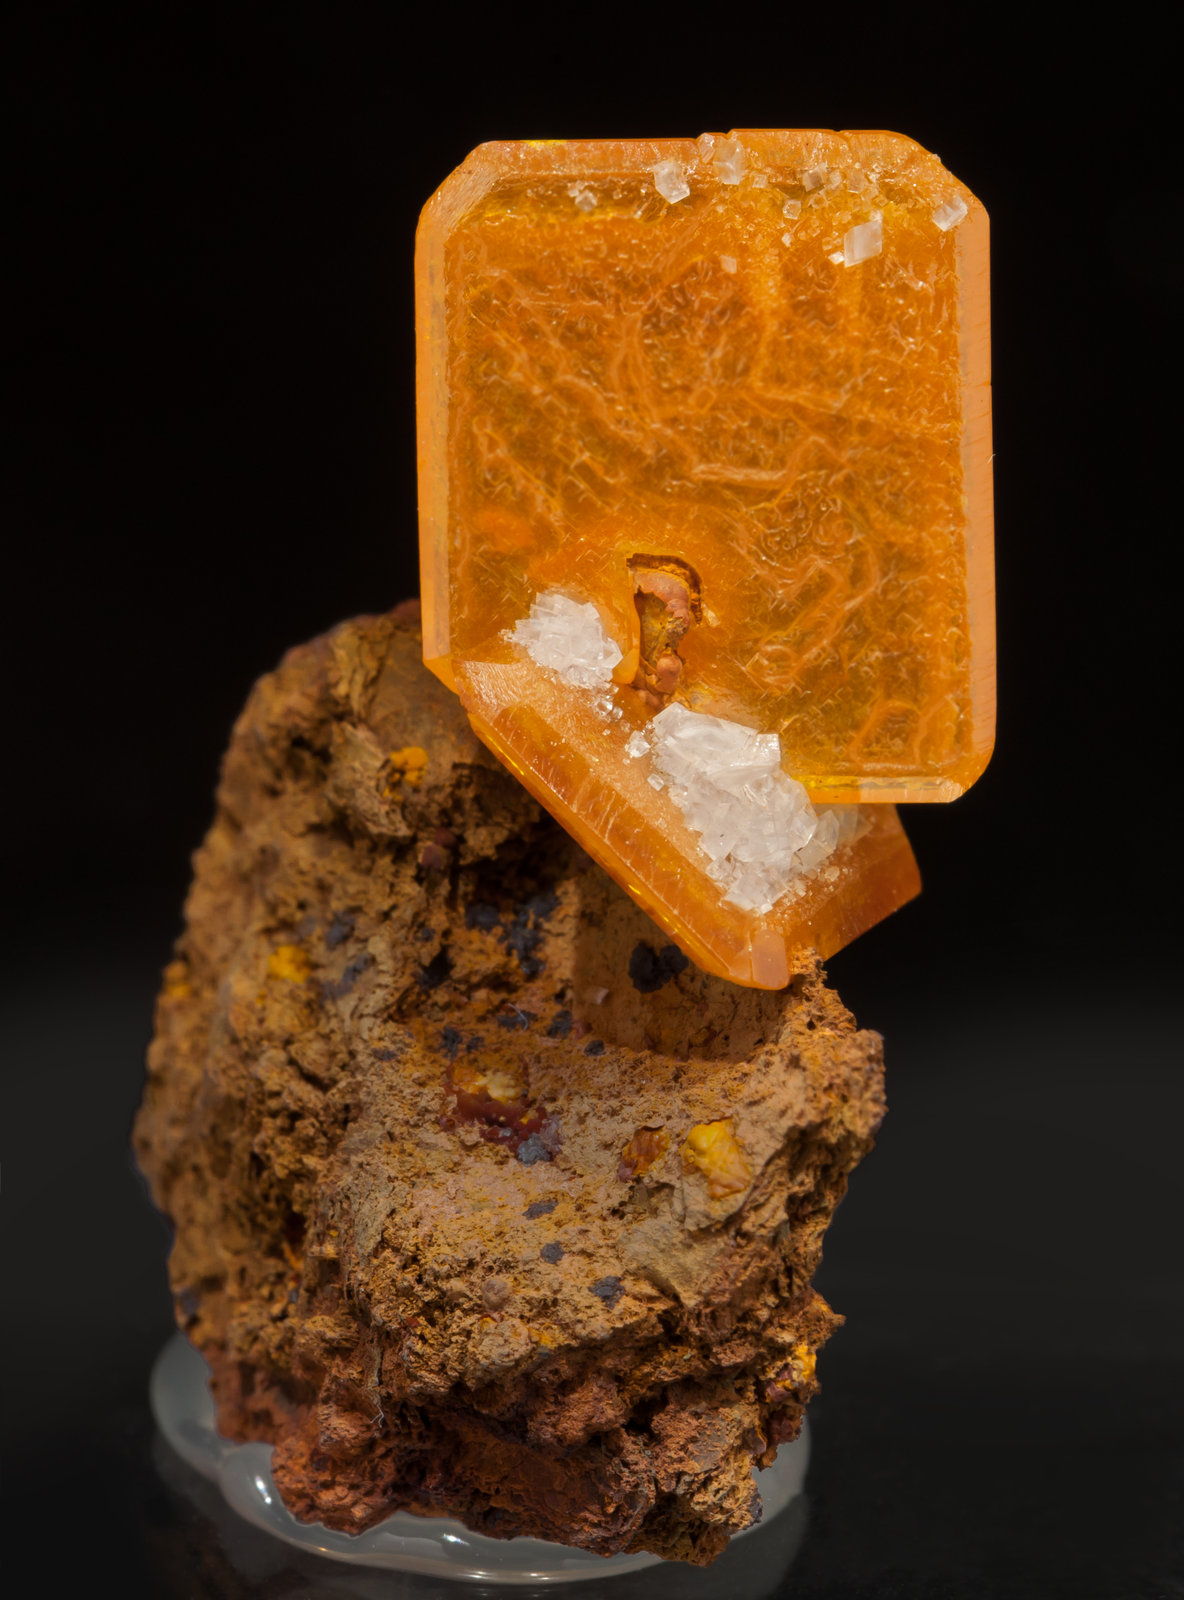 specimens/s_imagesAE9/Wulfenite-TB96AE9f.jpg